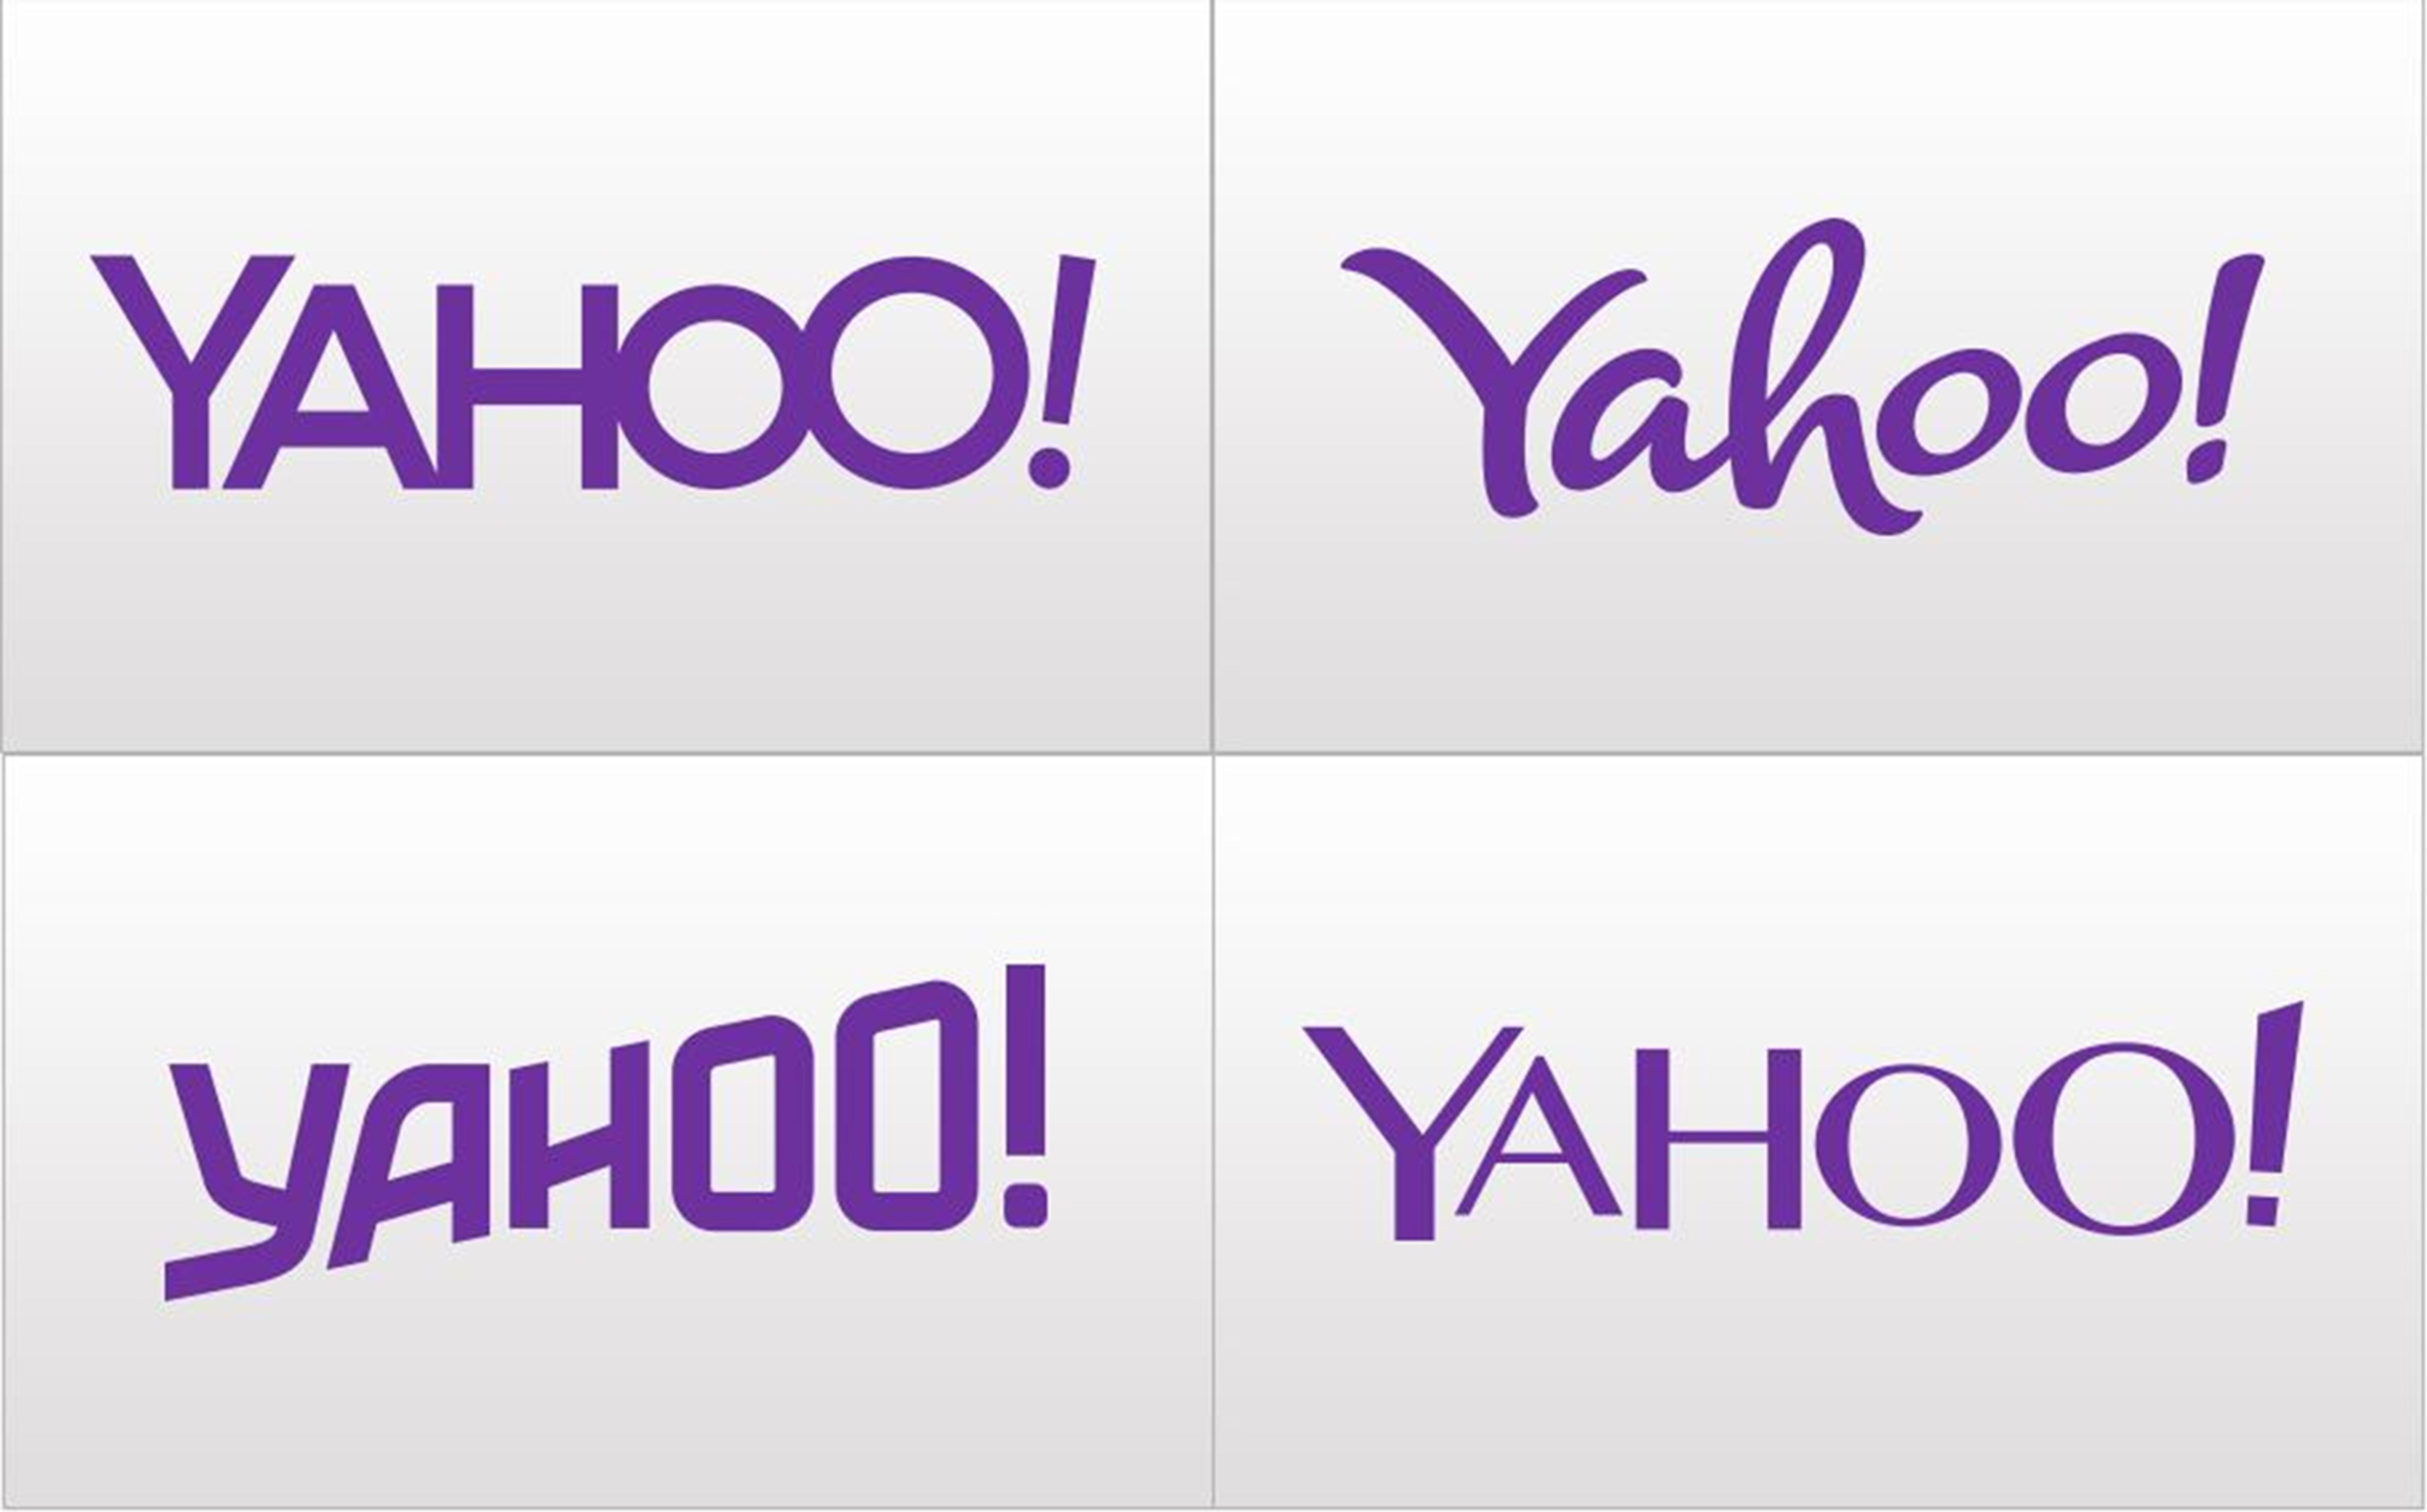 Yahoo news - Ahead Of Its Re Launch Tomorrow Yahoo Has Been Releasing A Different Version Of Its Logo Every Day For The Past 30 Days This Is Certainly An Innovative